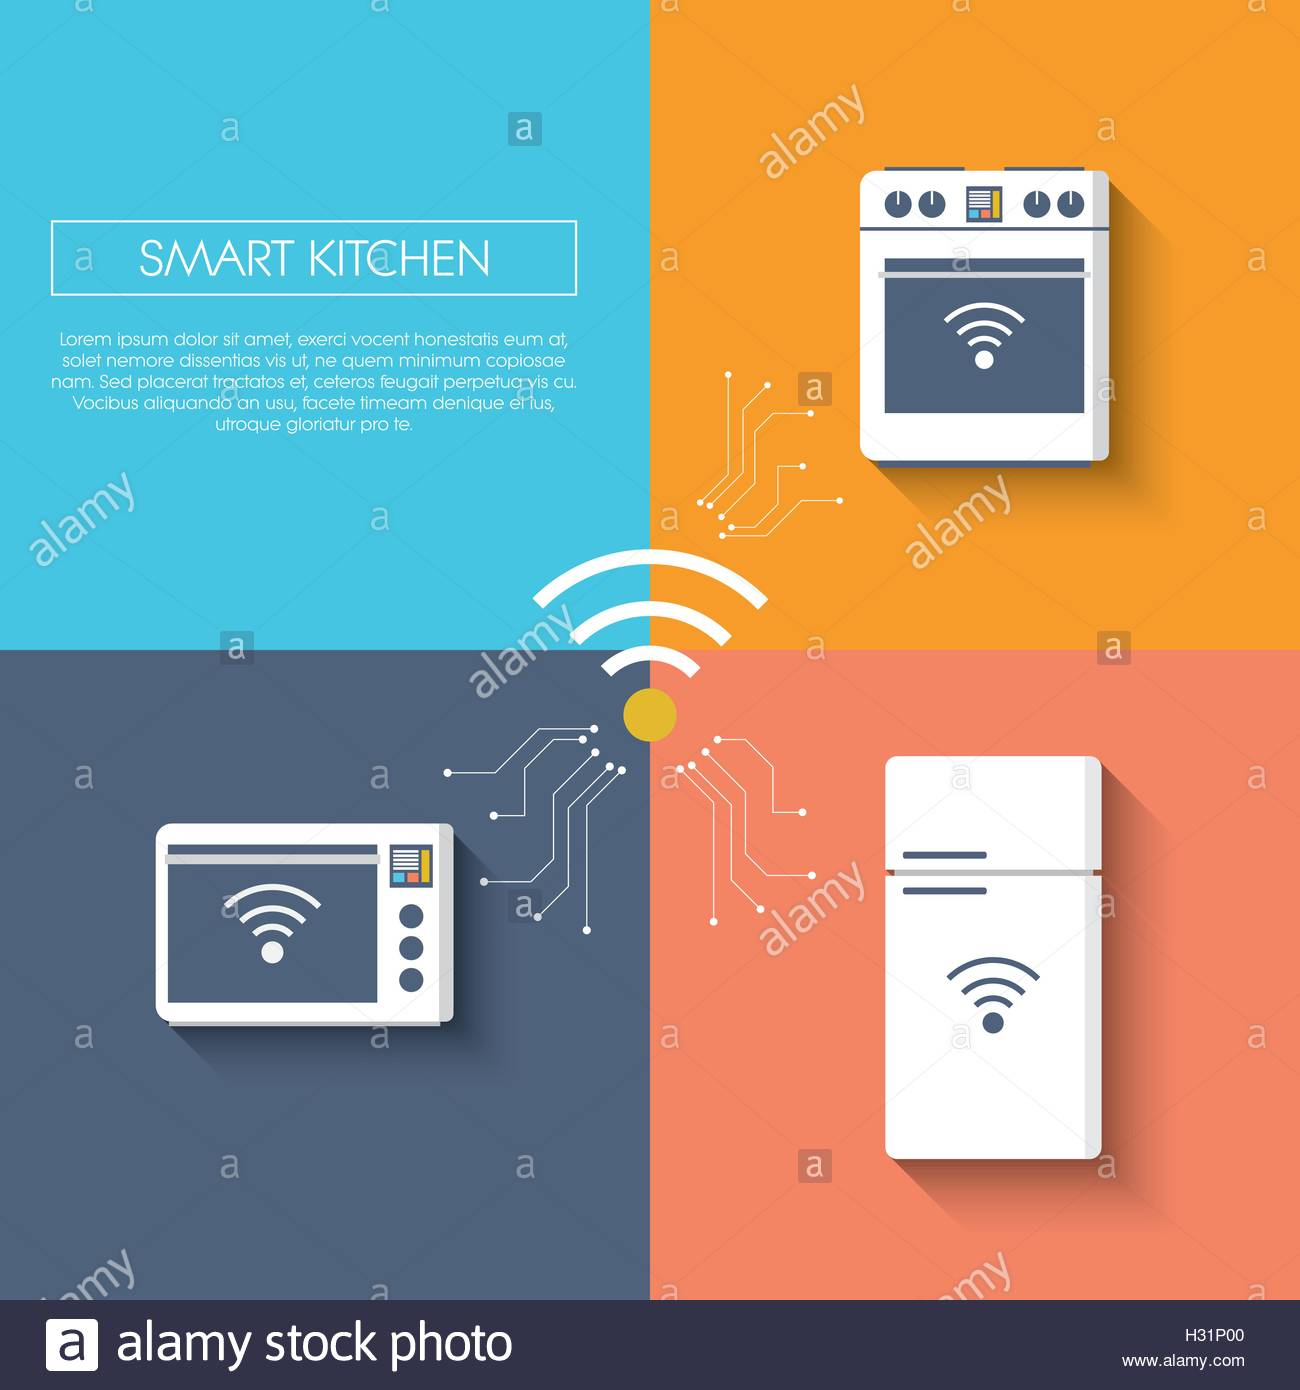 internet-of-things-smart-kitchen-concept